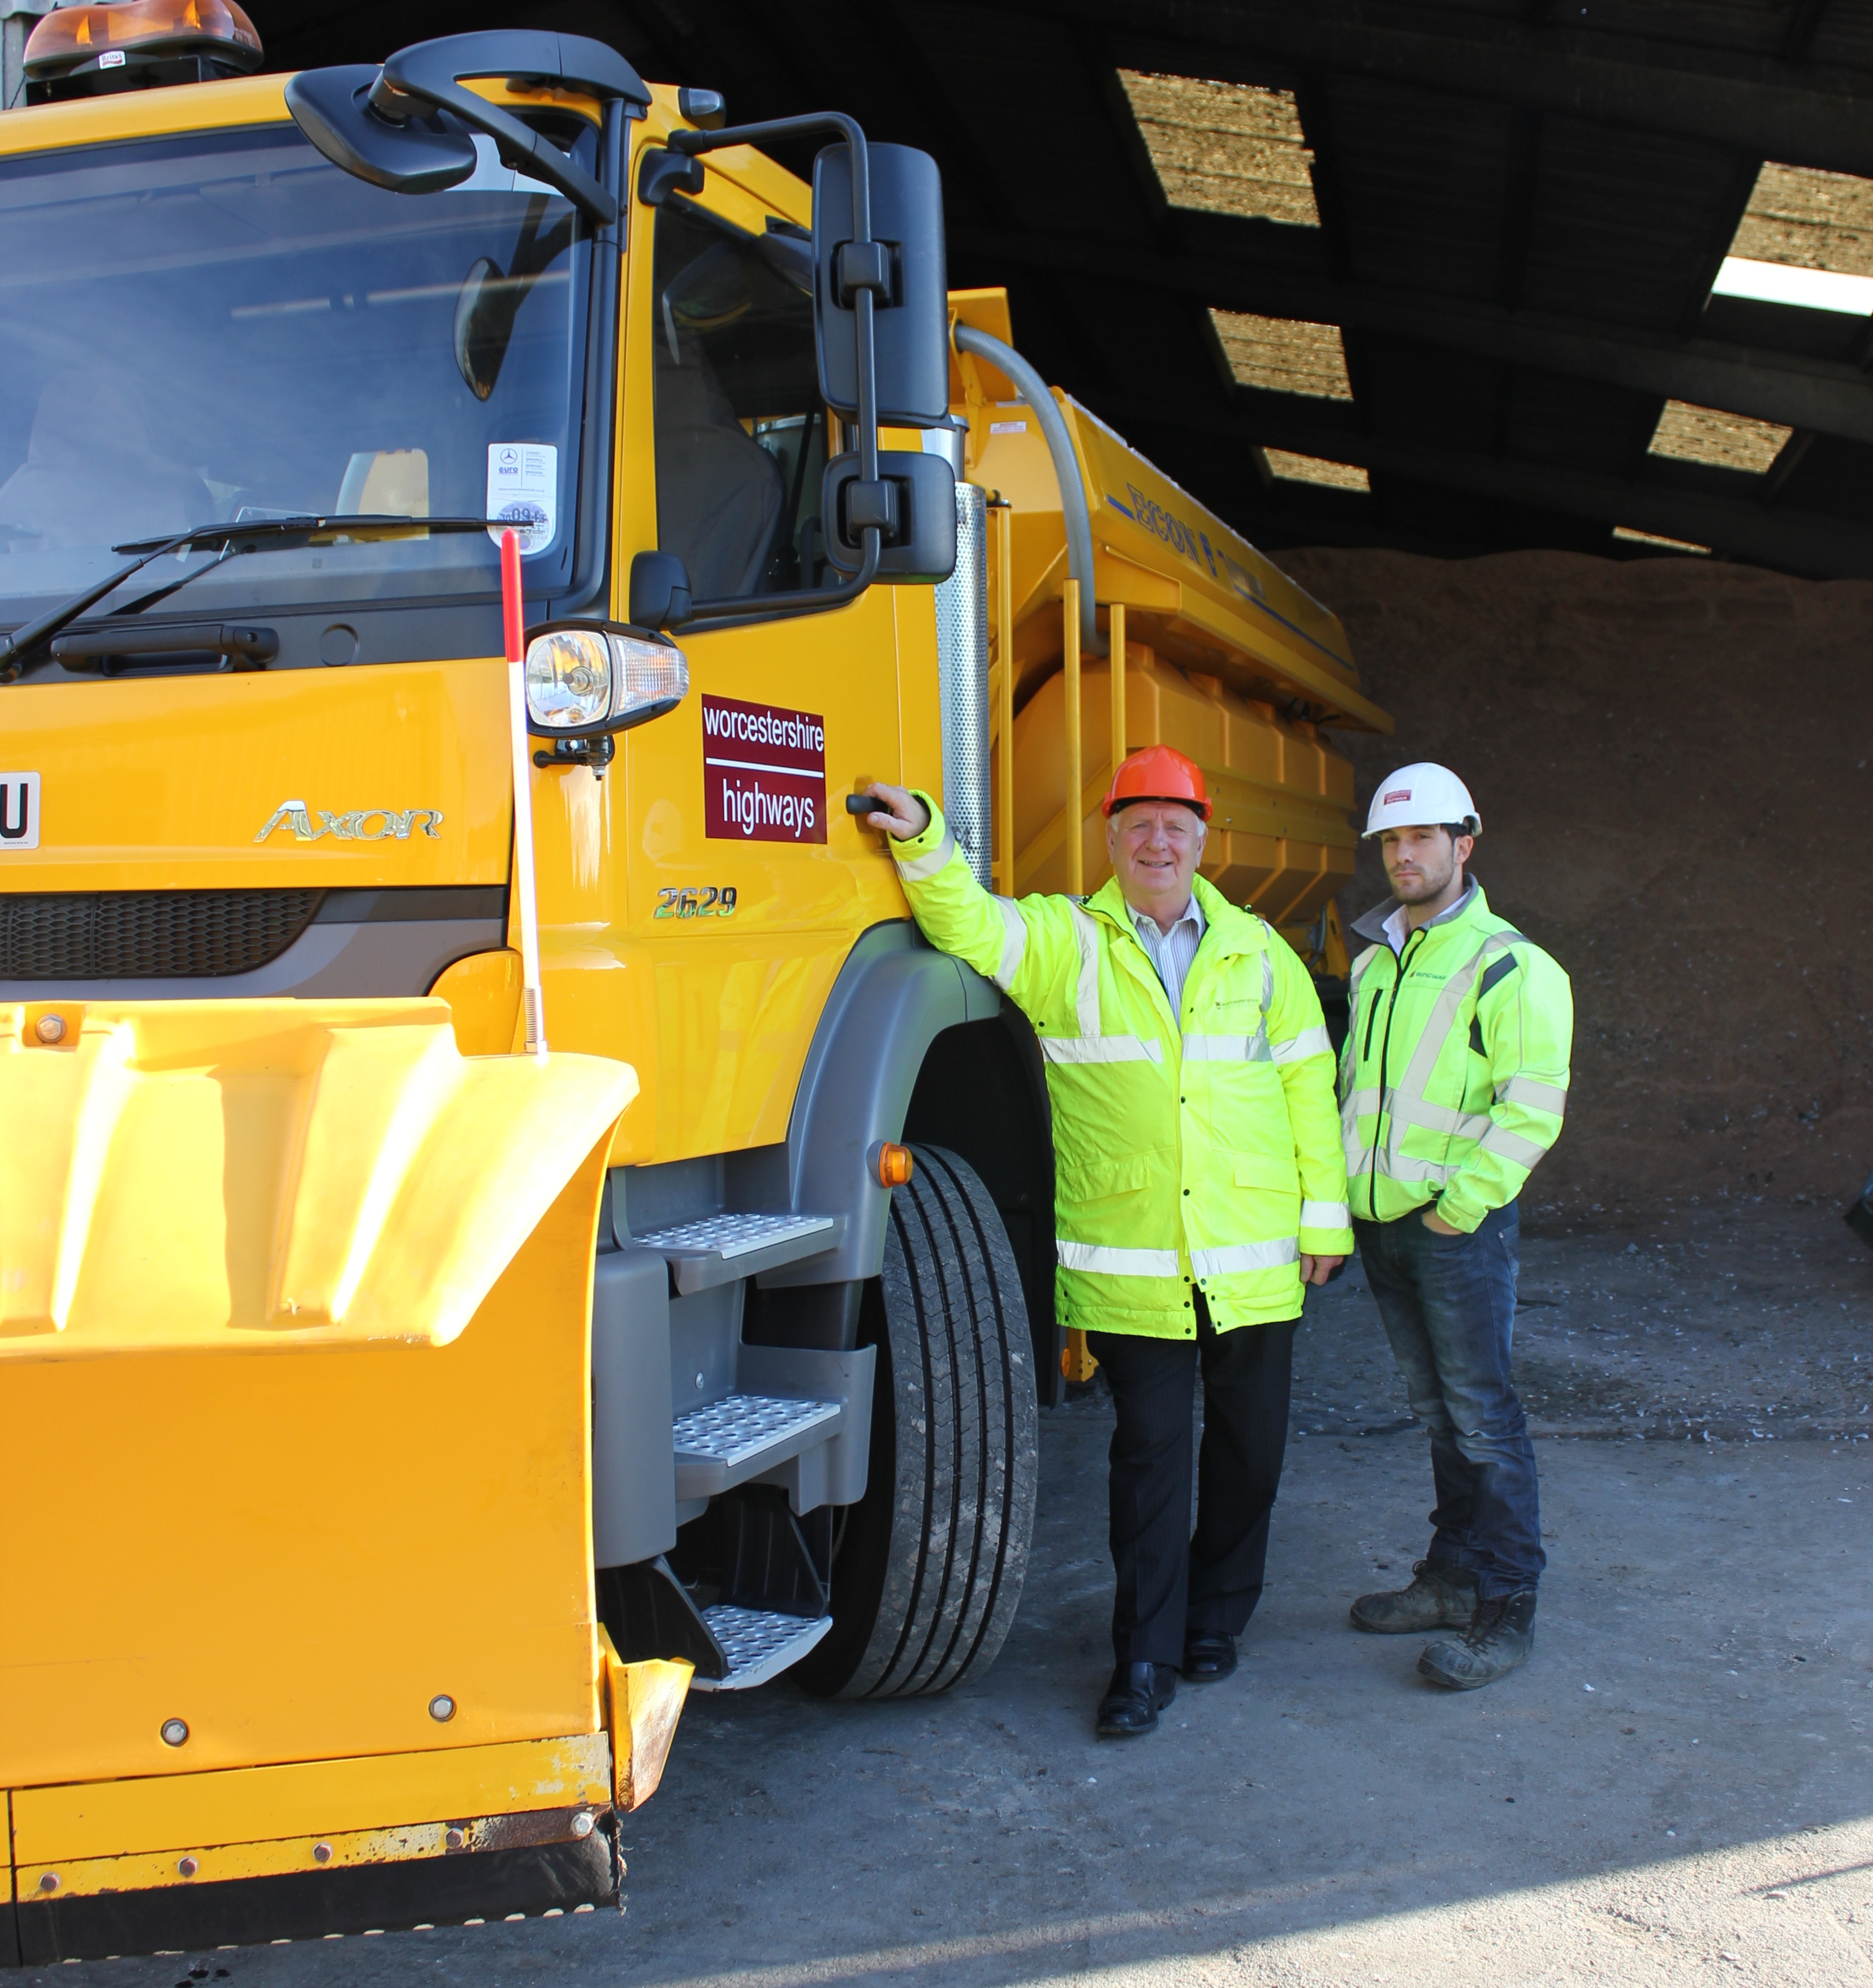 Cllr John Smith OBE, County Council Cabinet Member for Highways, next to a gritter and one of the brine tanks which stores the solution used to employ the 'pre-wet' technology.